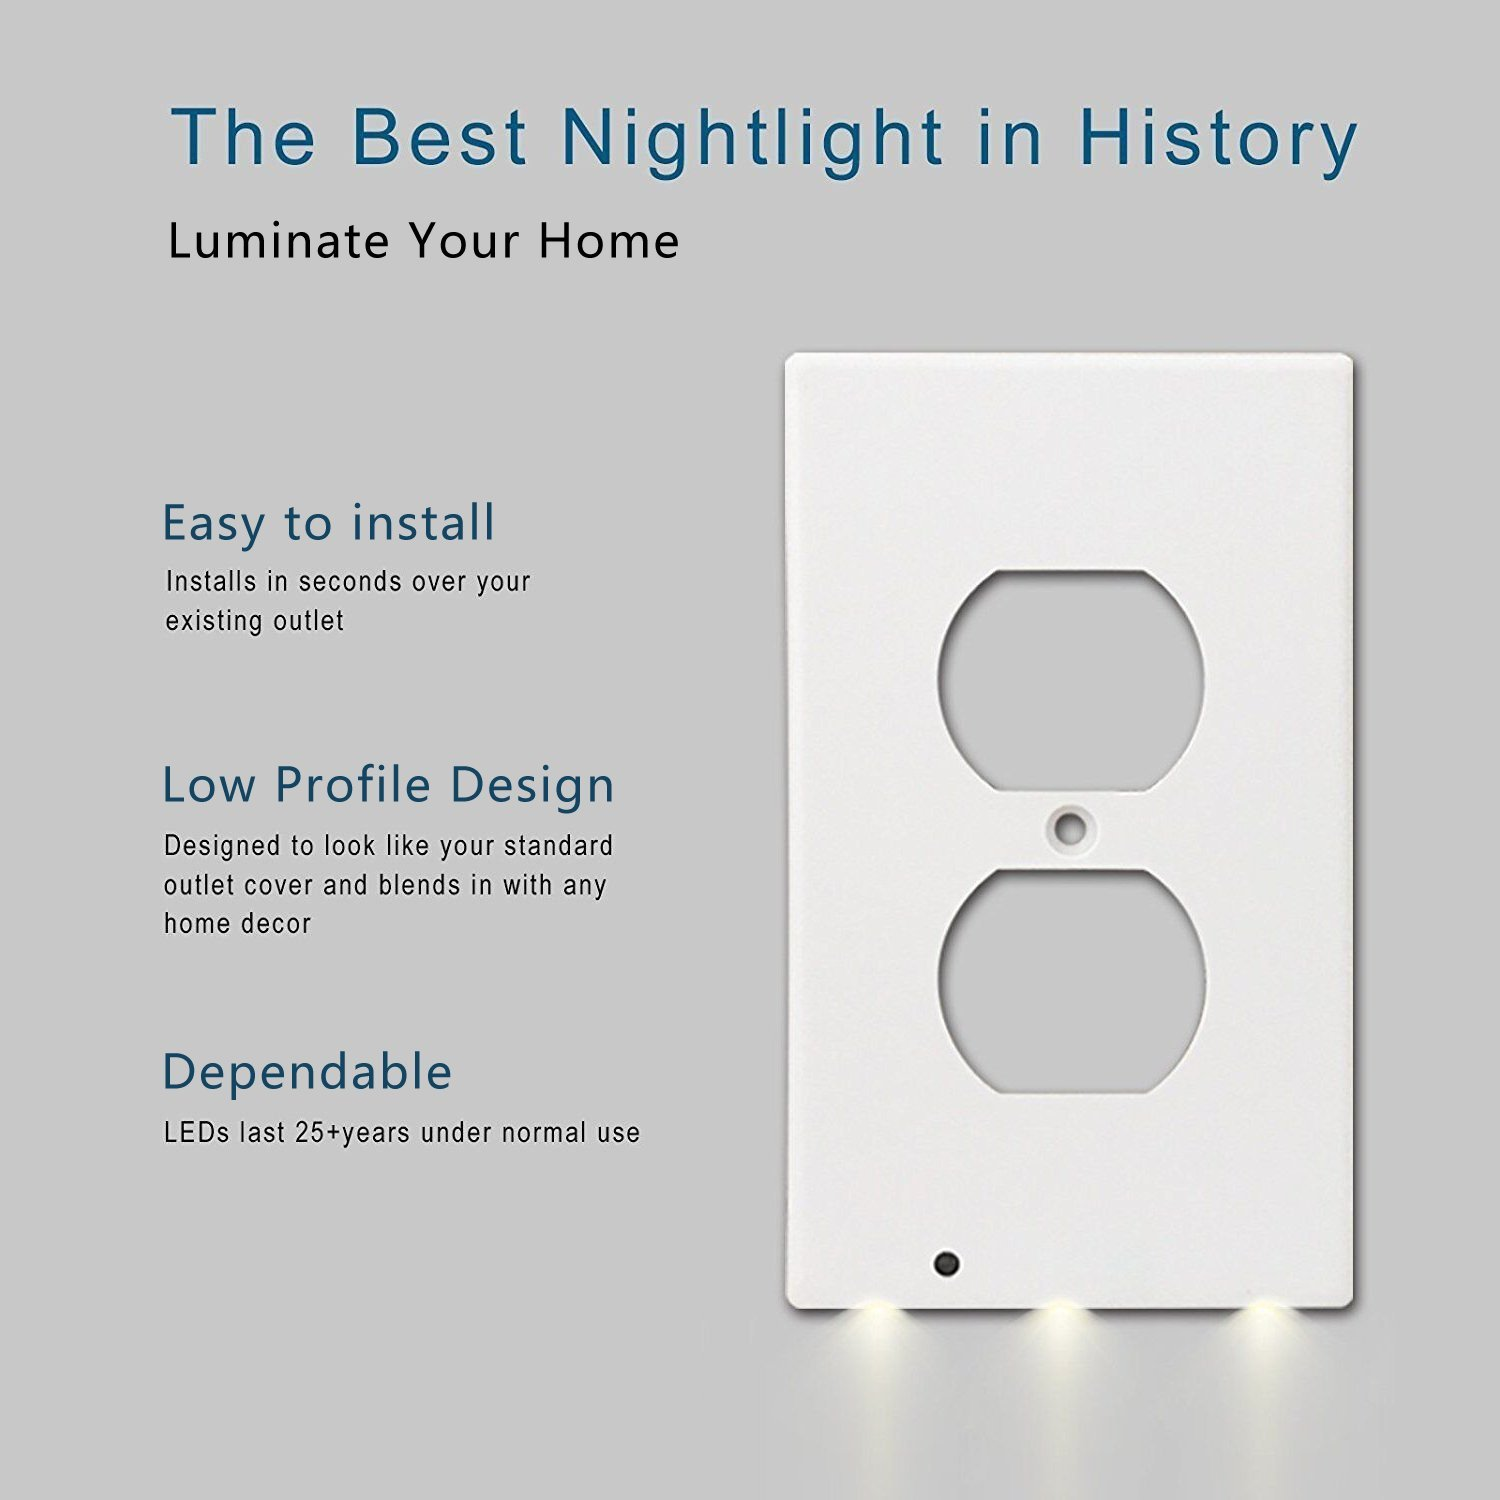 Exgreem GuideLight Wall Plates - Best Energy Saving LED Night Lights Wall Outlet Cover- Fireproof Material- No Batteries Or Wires, White (10 Pack Duplex) by Exgreem